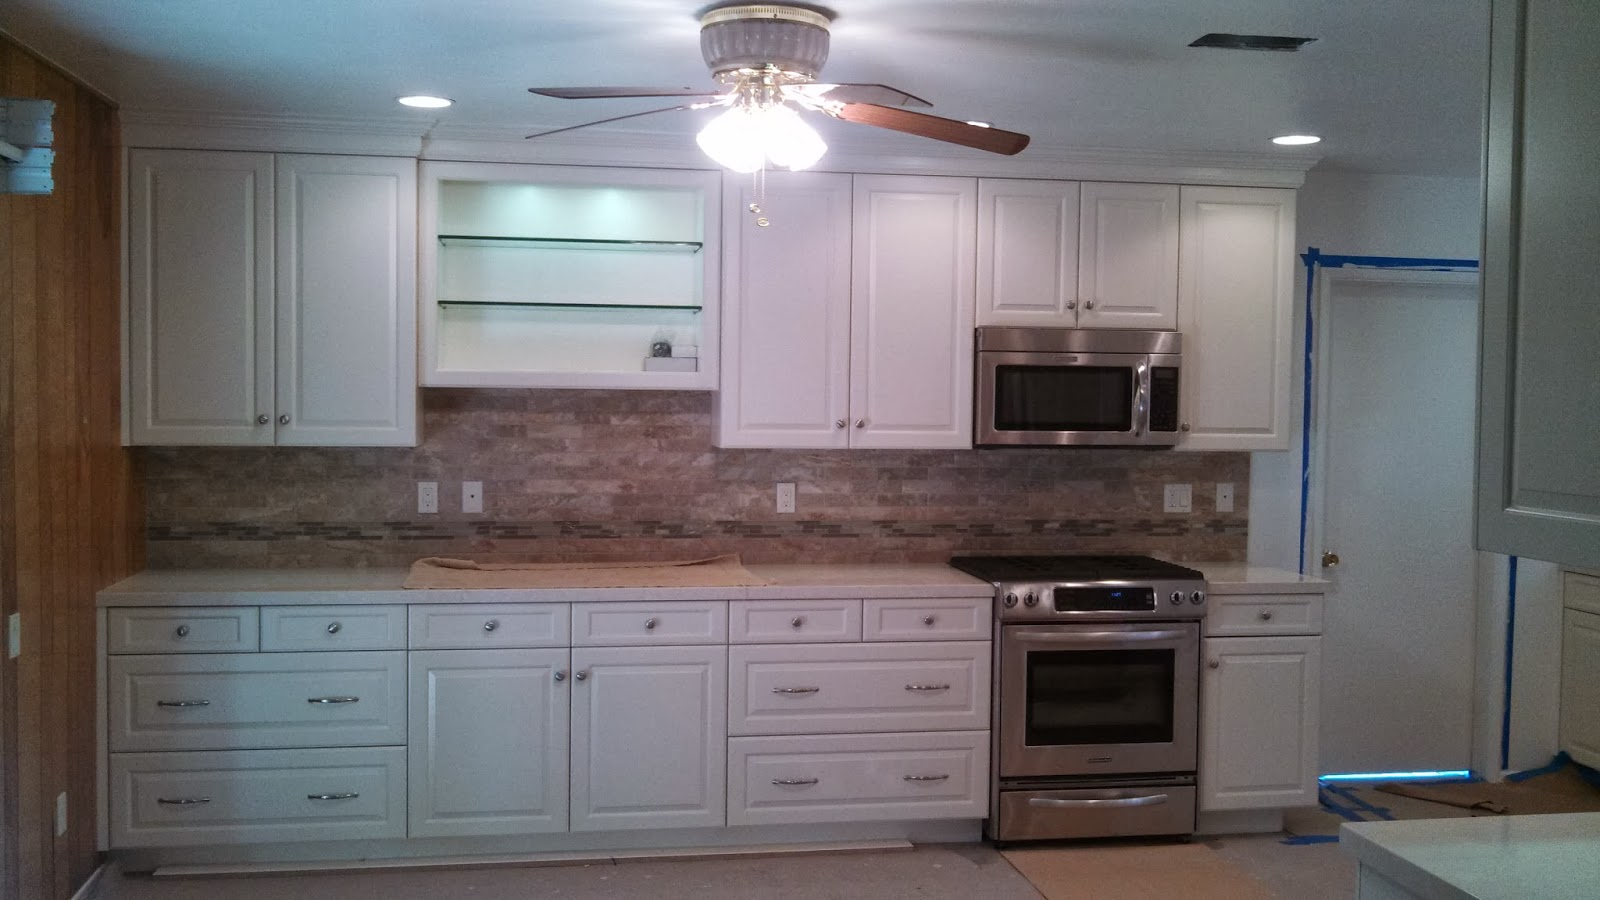 Brilliant Electric: Kitchen Remodel & Complete Rewire with dedicated ...